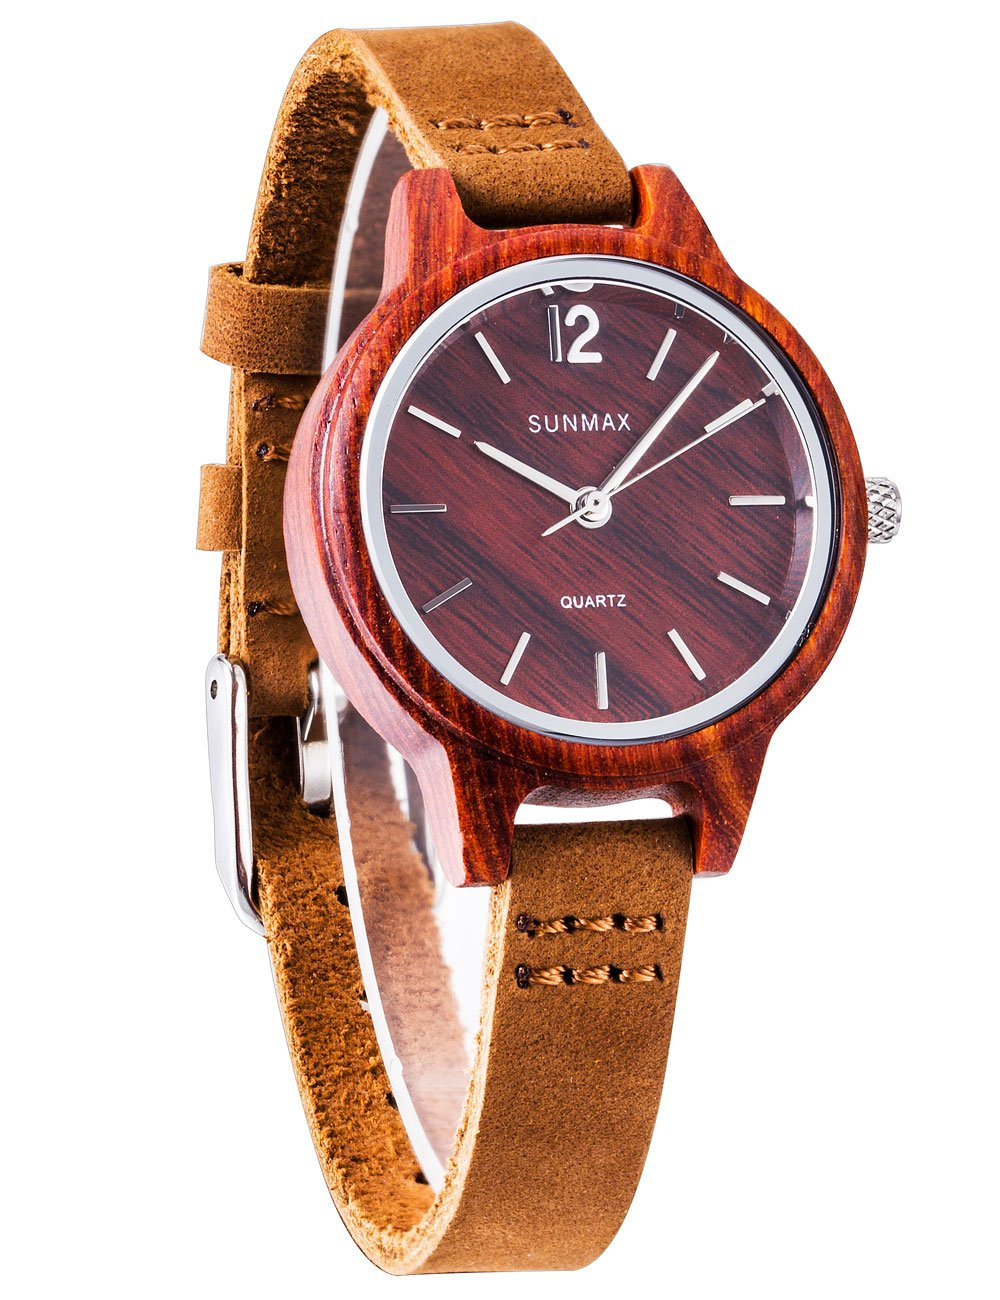 SUNMAX Watches for Women Wooden Wrist Red Tanwood Serie Dial 30mm Leather Strap Wood Bezel Analog Quartz Movement-Bamboo Watch Box Wood Watches for Women Red with Date Waterproof Glasses Leather Ban